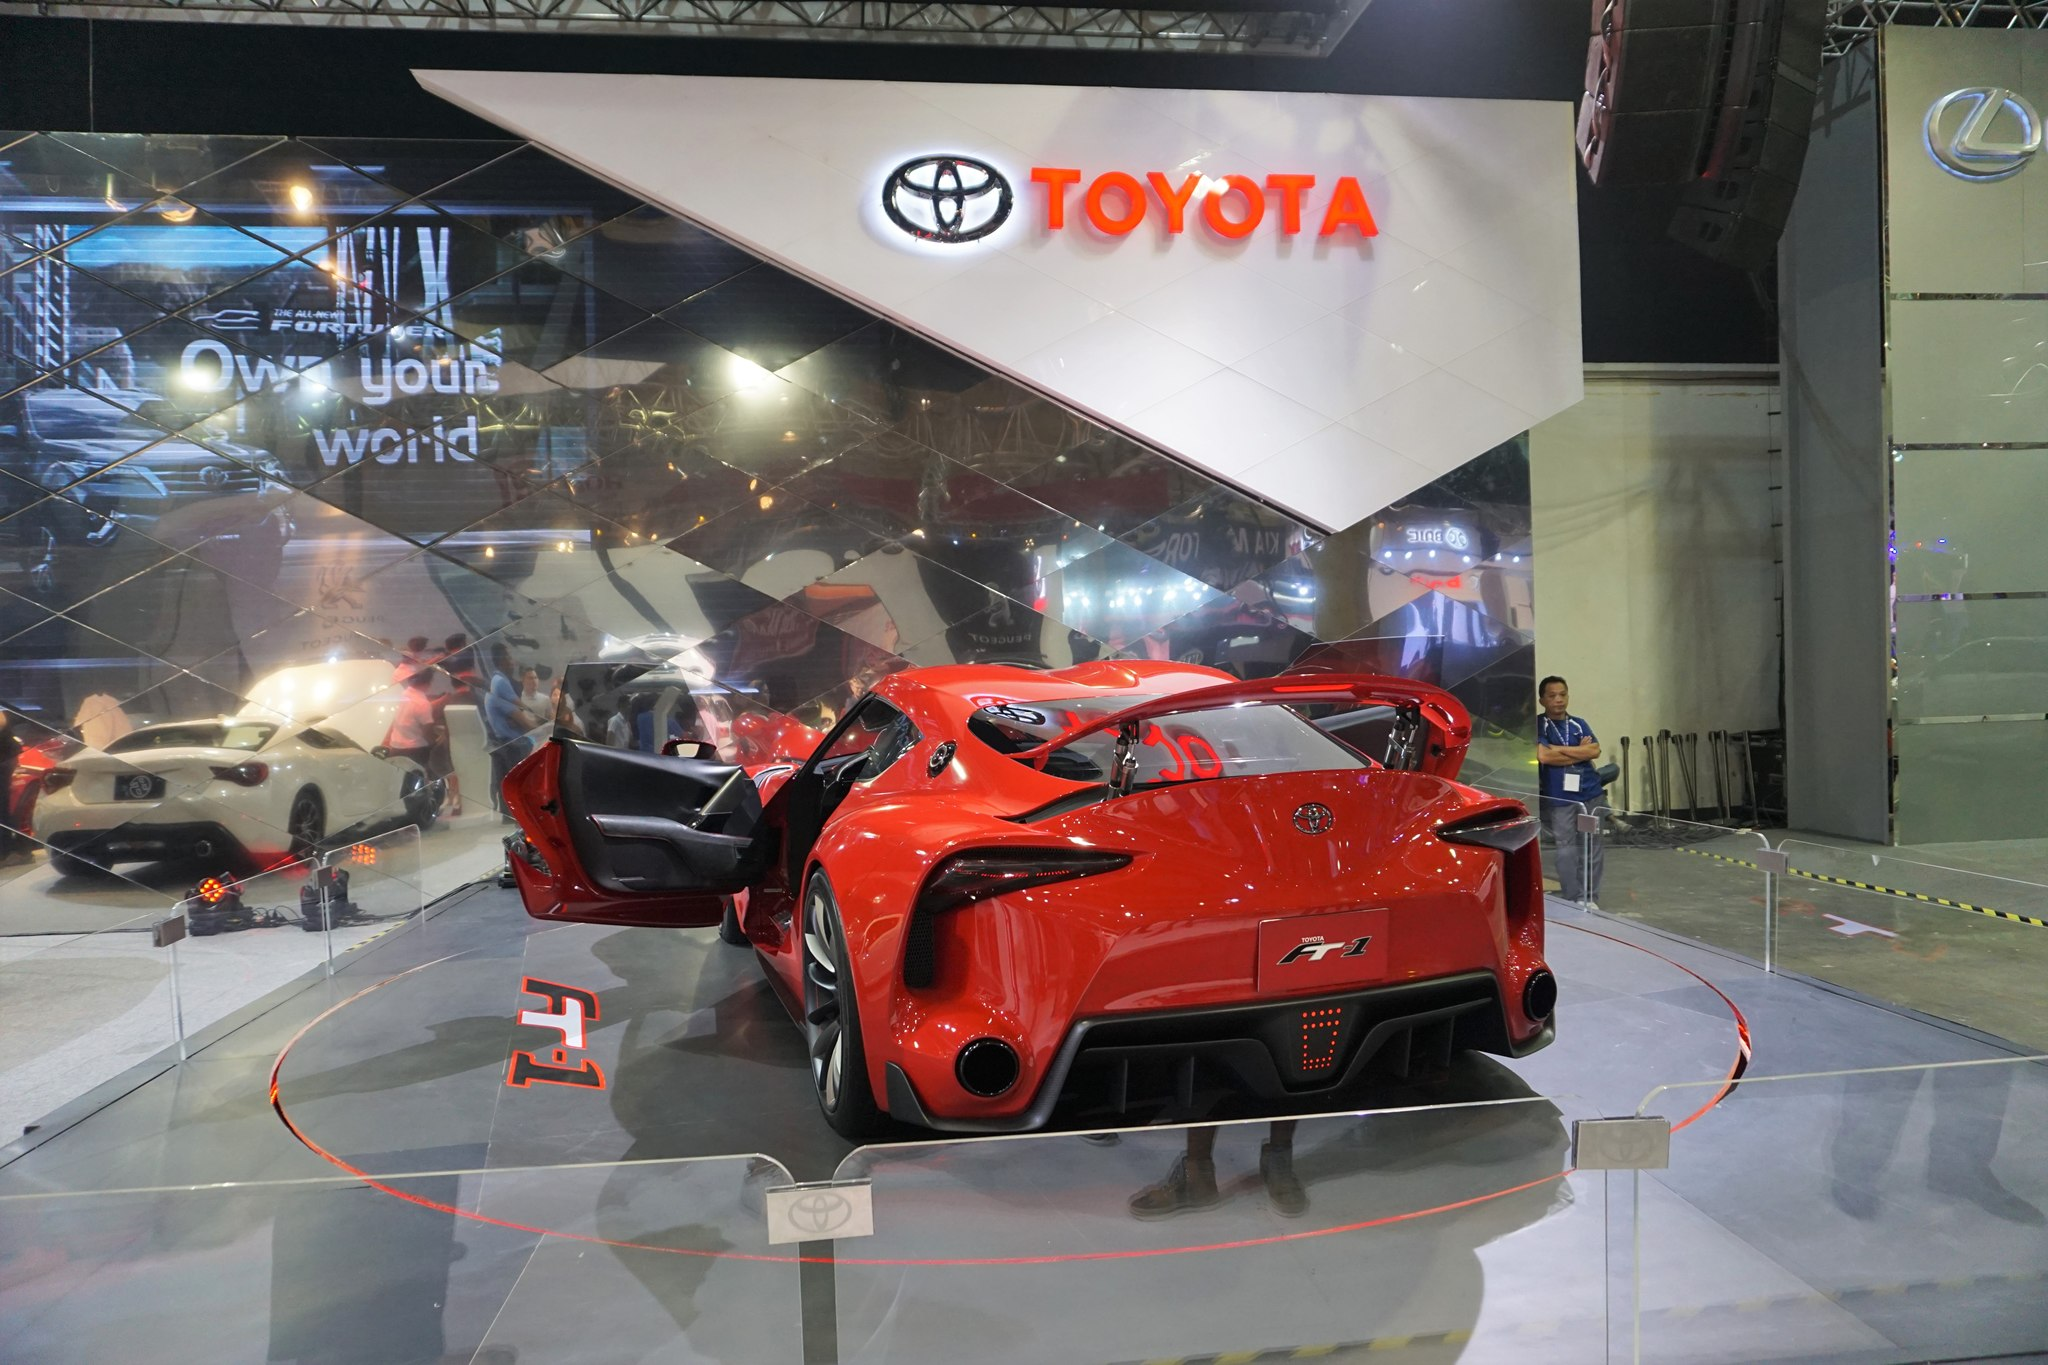 toyota-ft-1-concept-car-at-the-philippine-international-motor-show-1